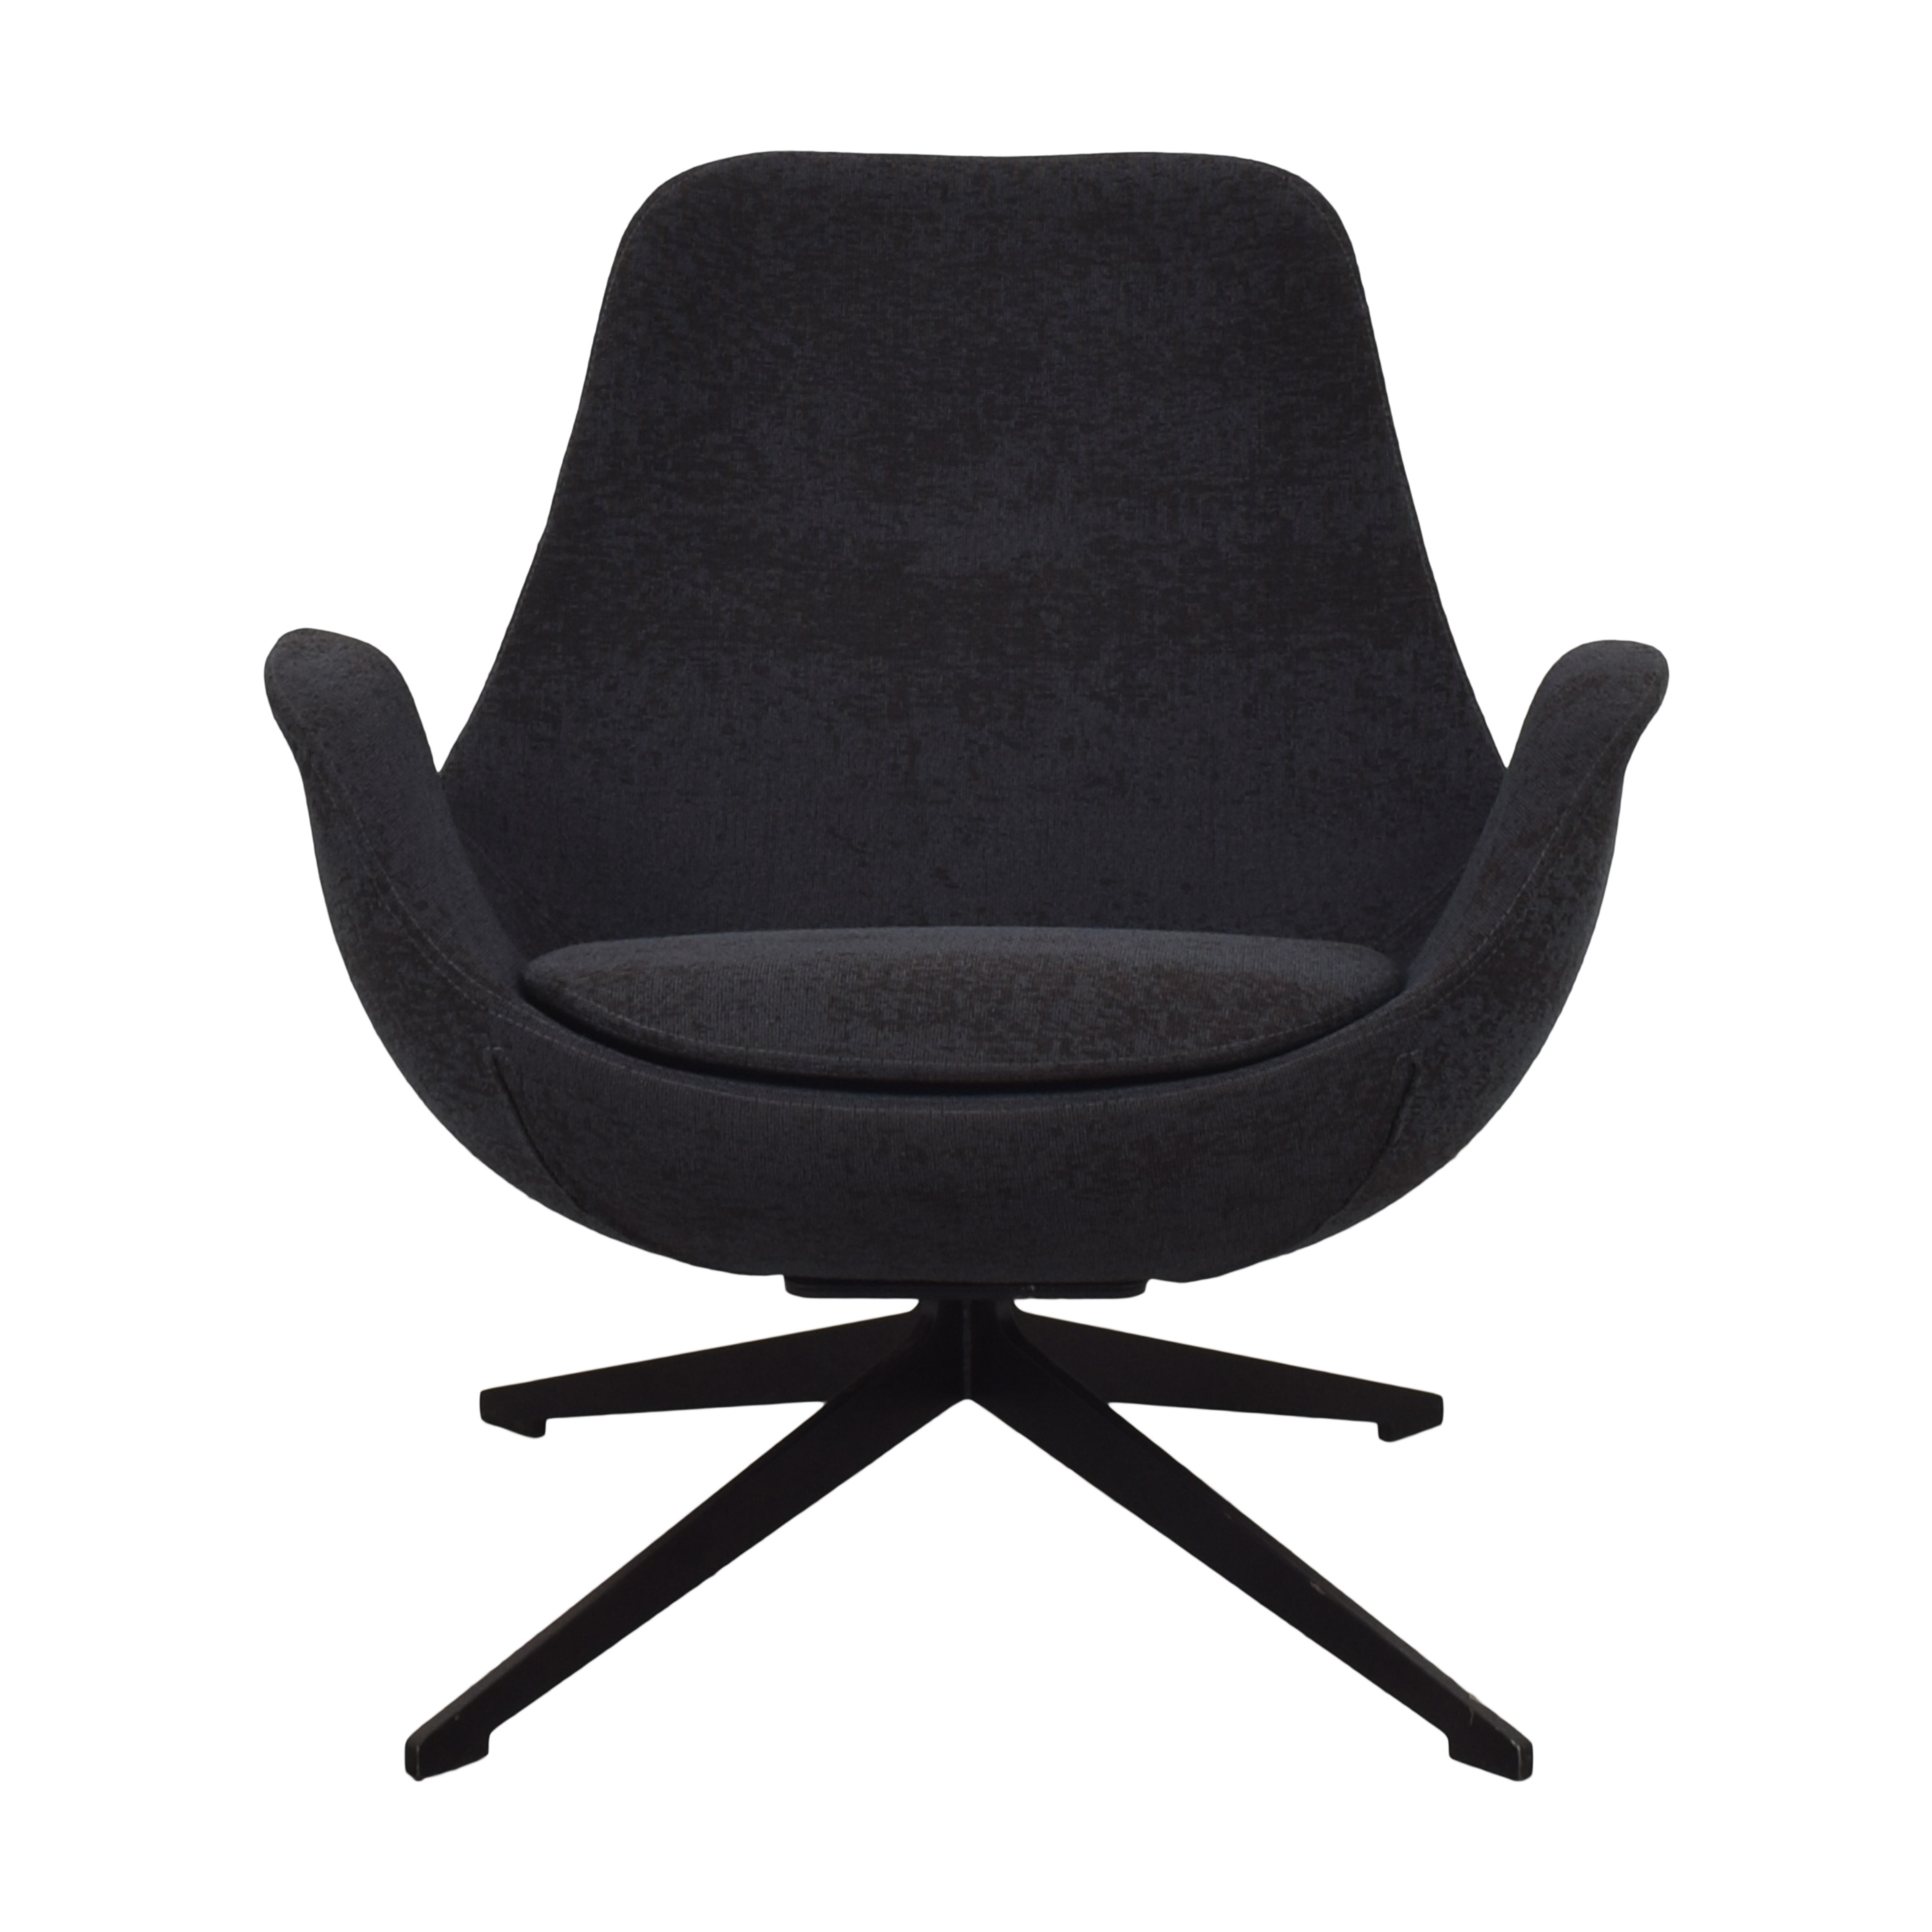 Koleksiyon Koleksiyon Halia Low Back Swivel Armchair second hand